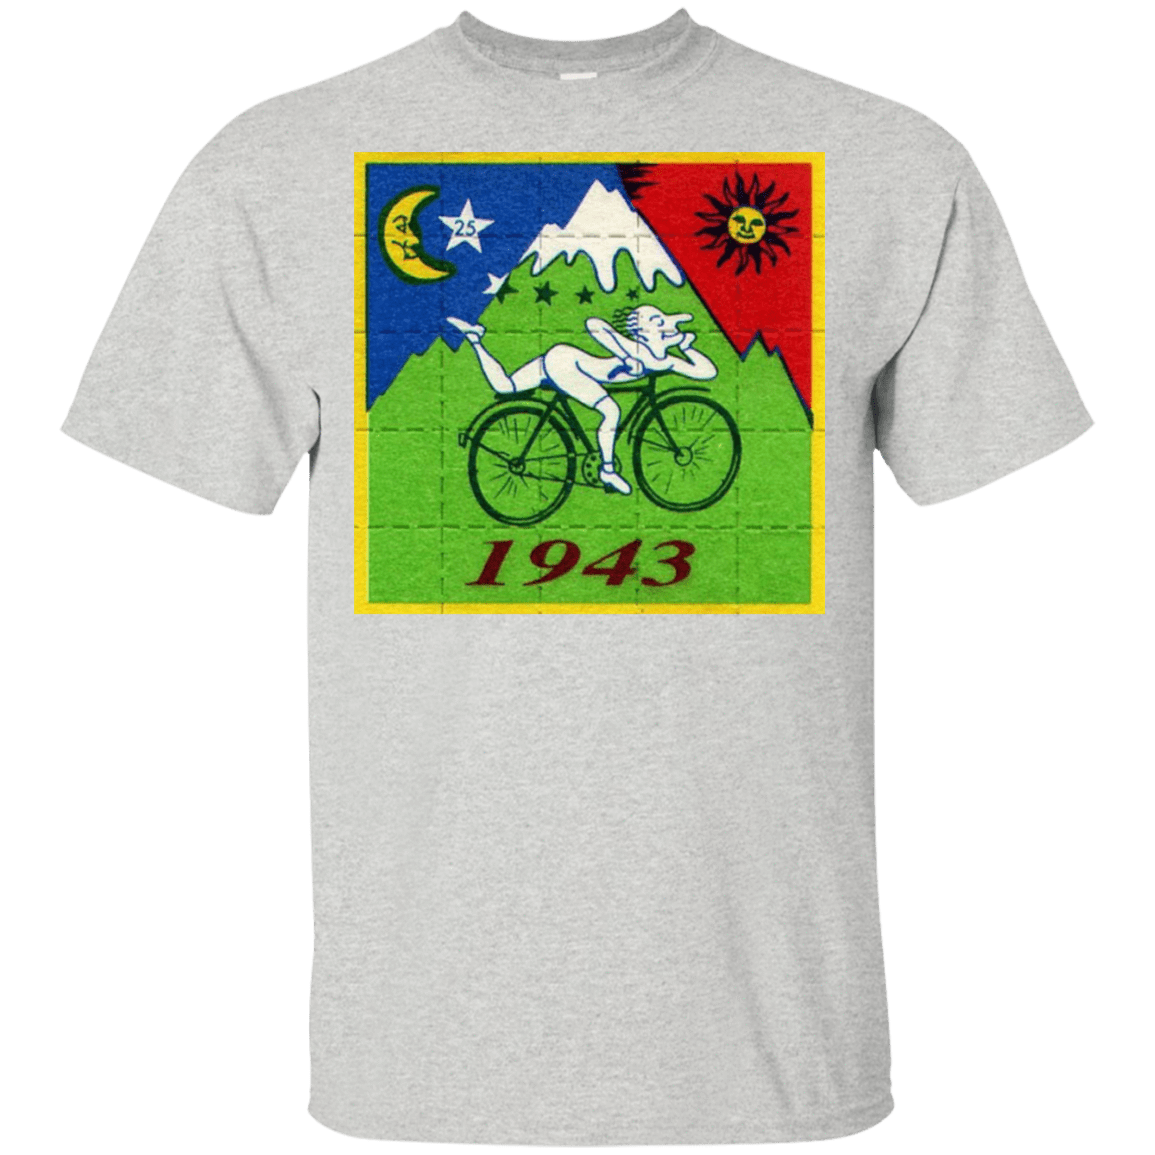 Bicycle Day 22-2475-73565656-12568 - Tee Ript